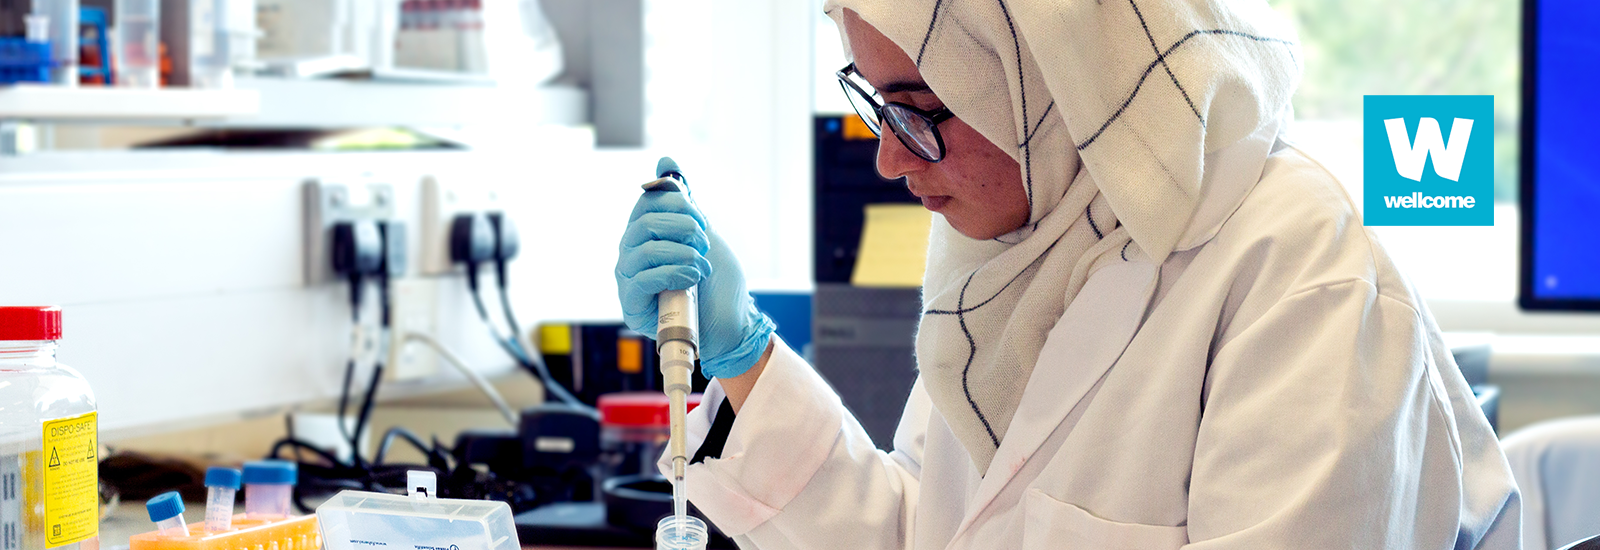 Student in a laboratory with the Wellcome logo